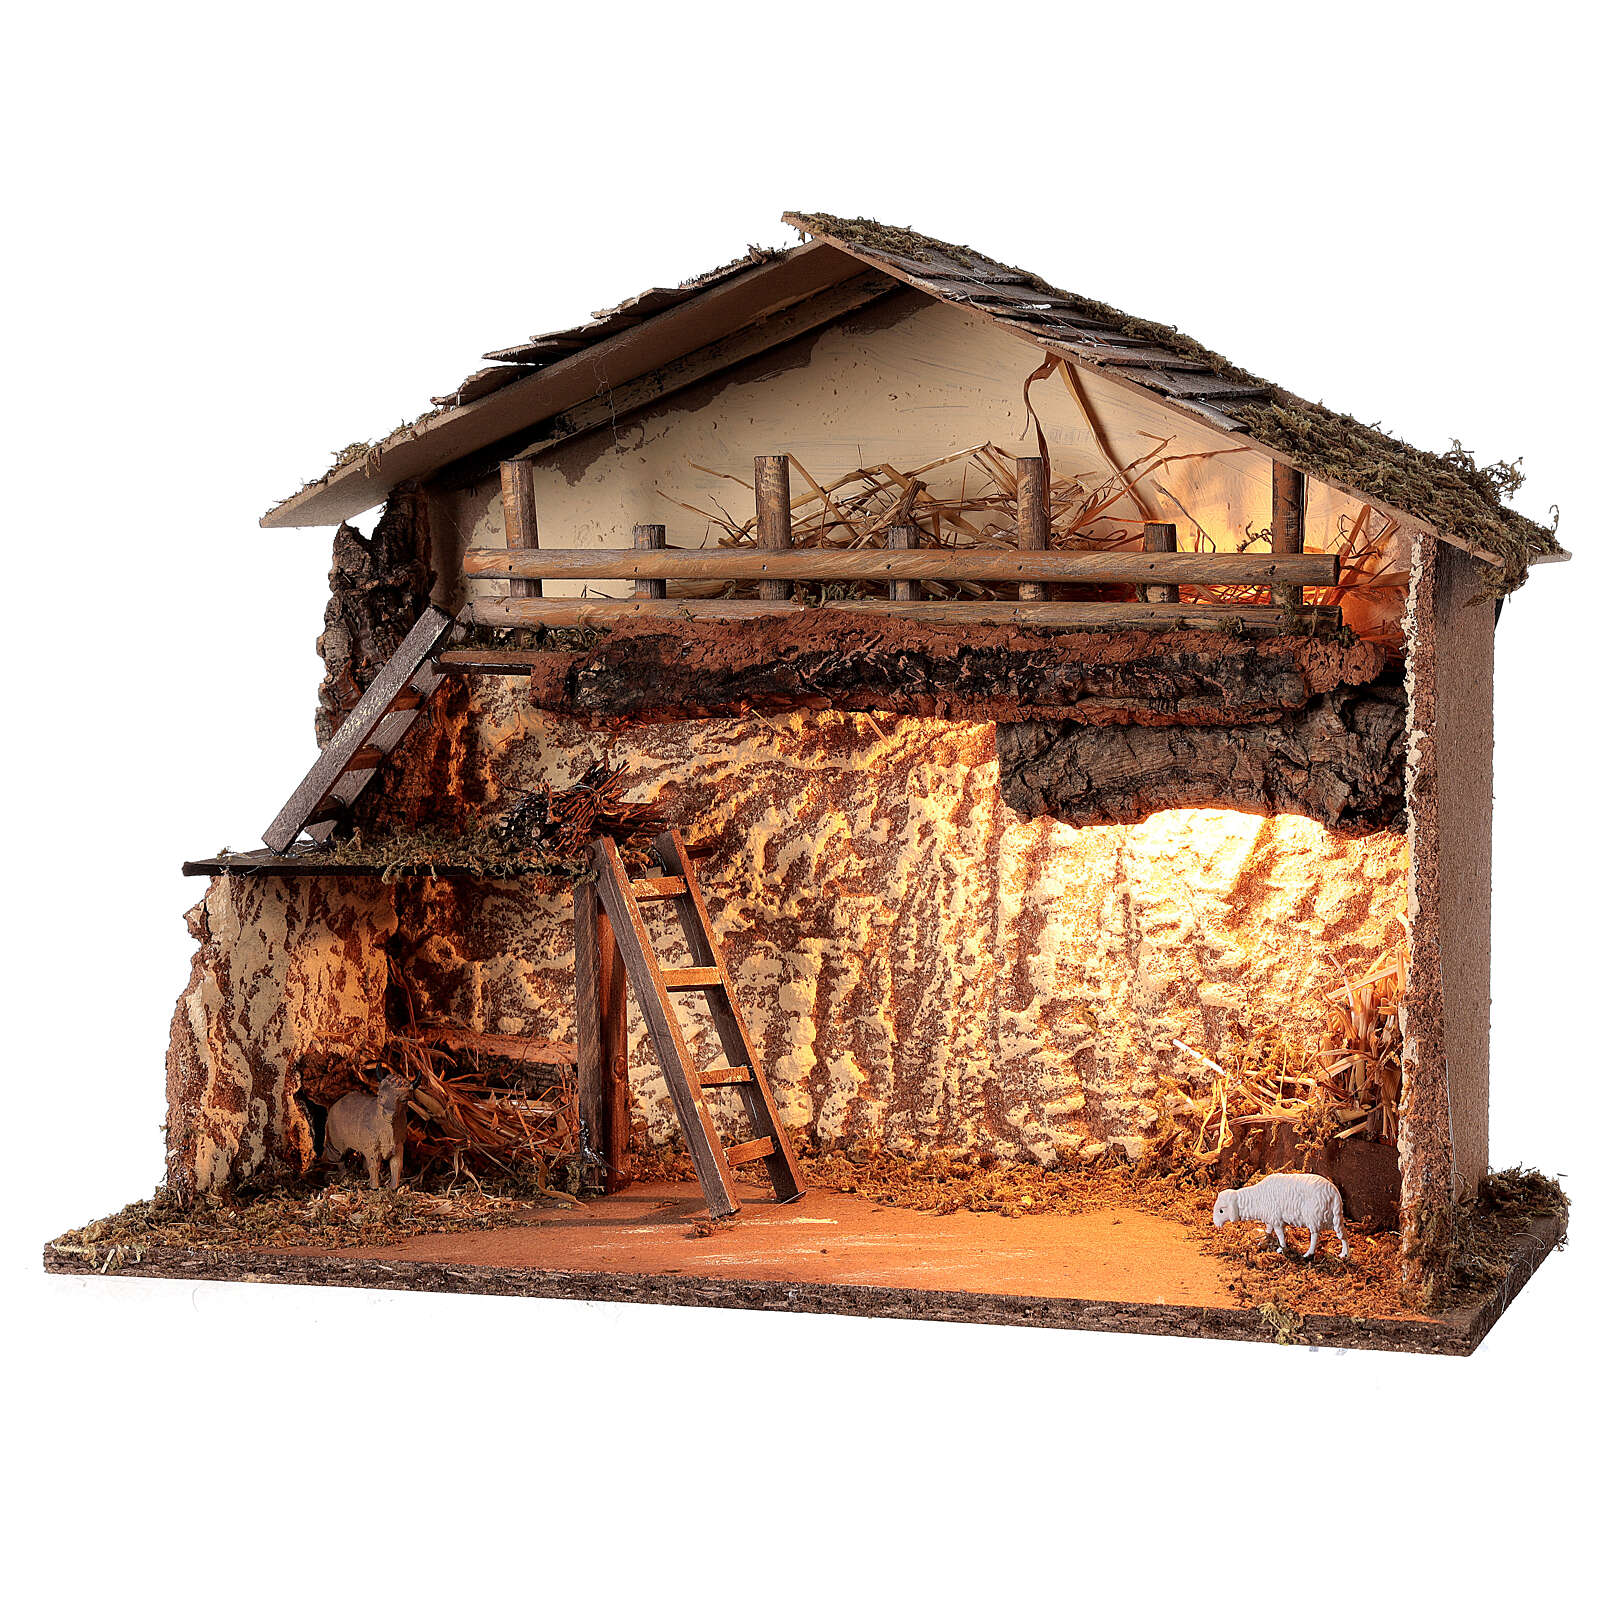 Lighted nativity stable 35x50x25 cm Nordic nativity 12-14 cm 4